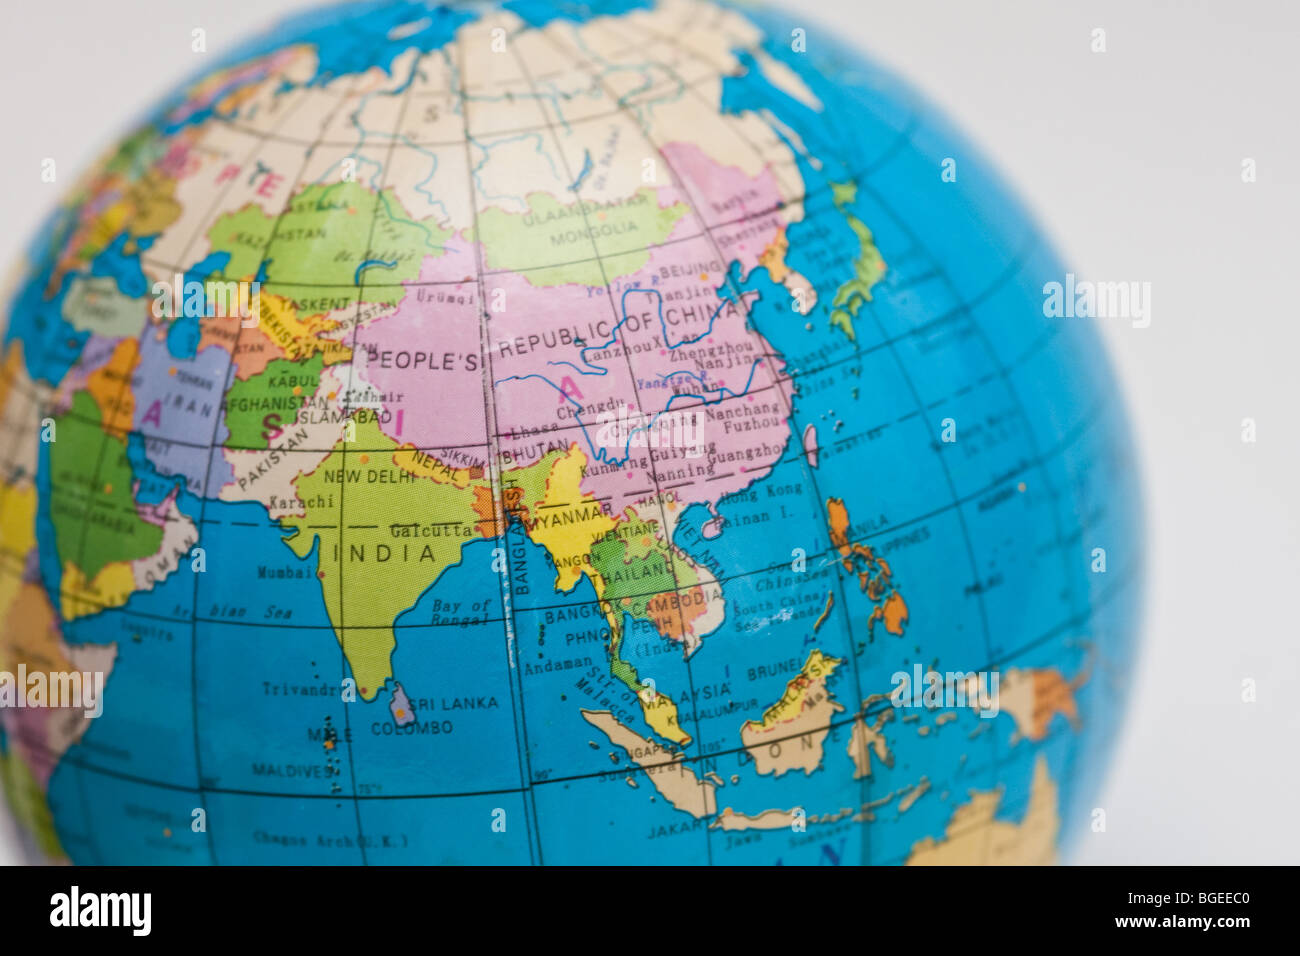 World Map Atlas Stock Photos & World Map Atlas Stock Images ...